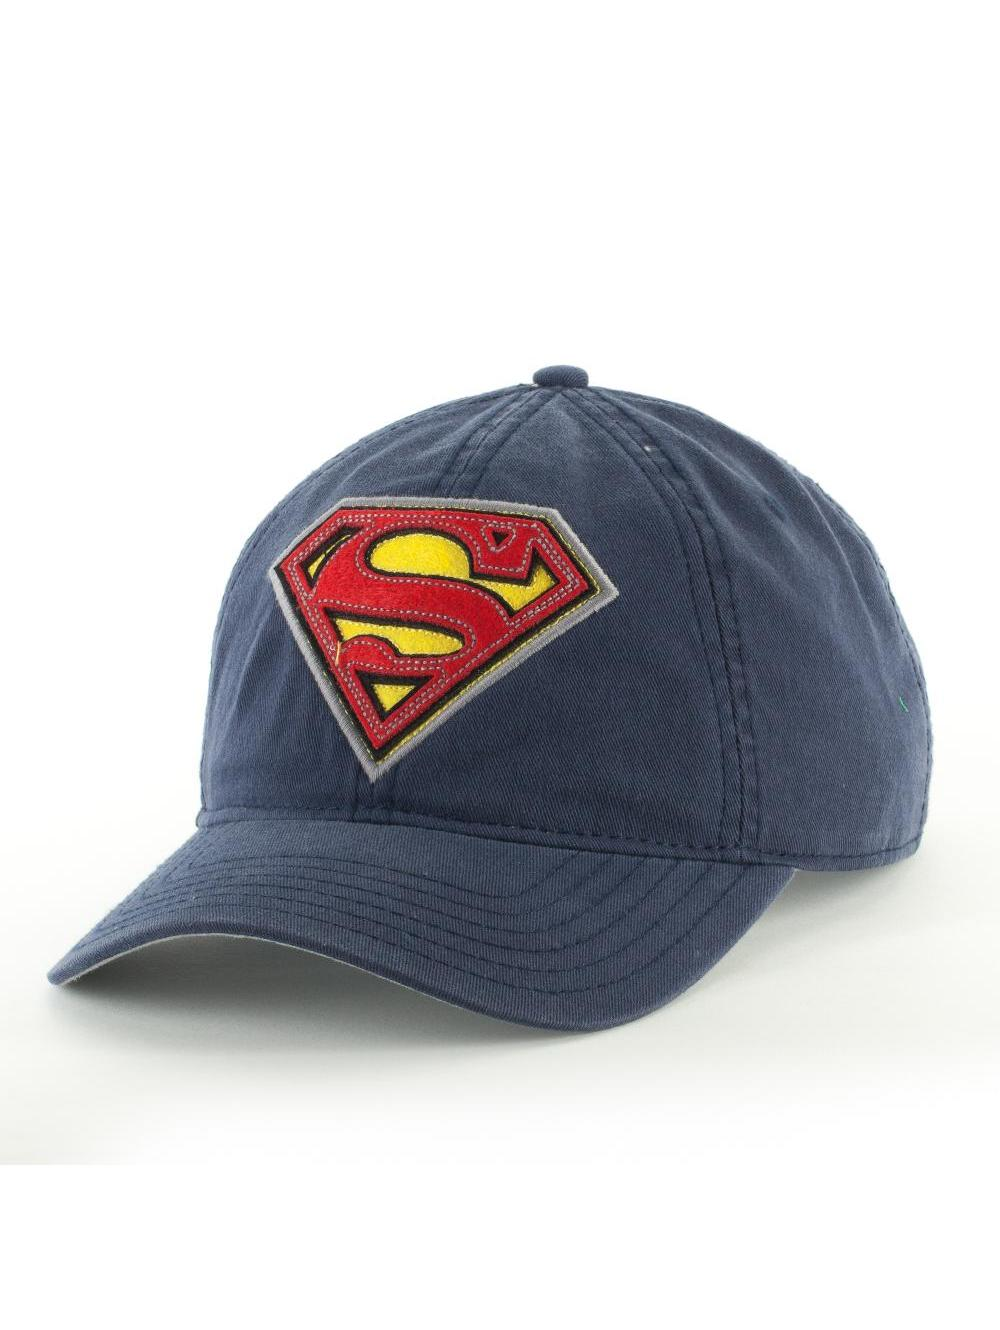 DC COMICS OFFICIAL SUPERMAN LOGO SNAPBACK BY BIOWORLD